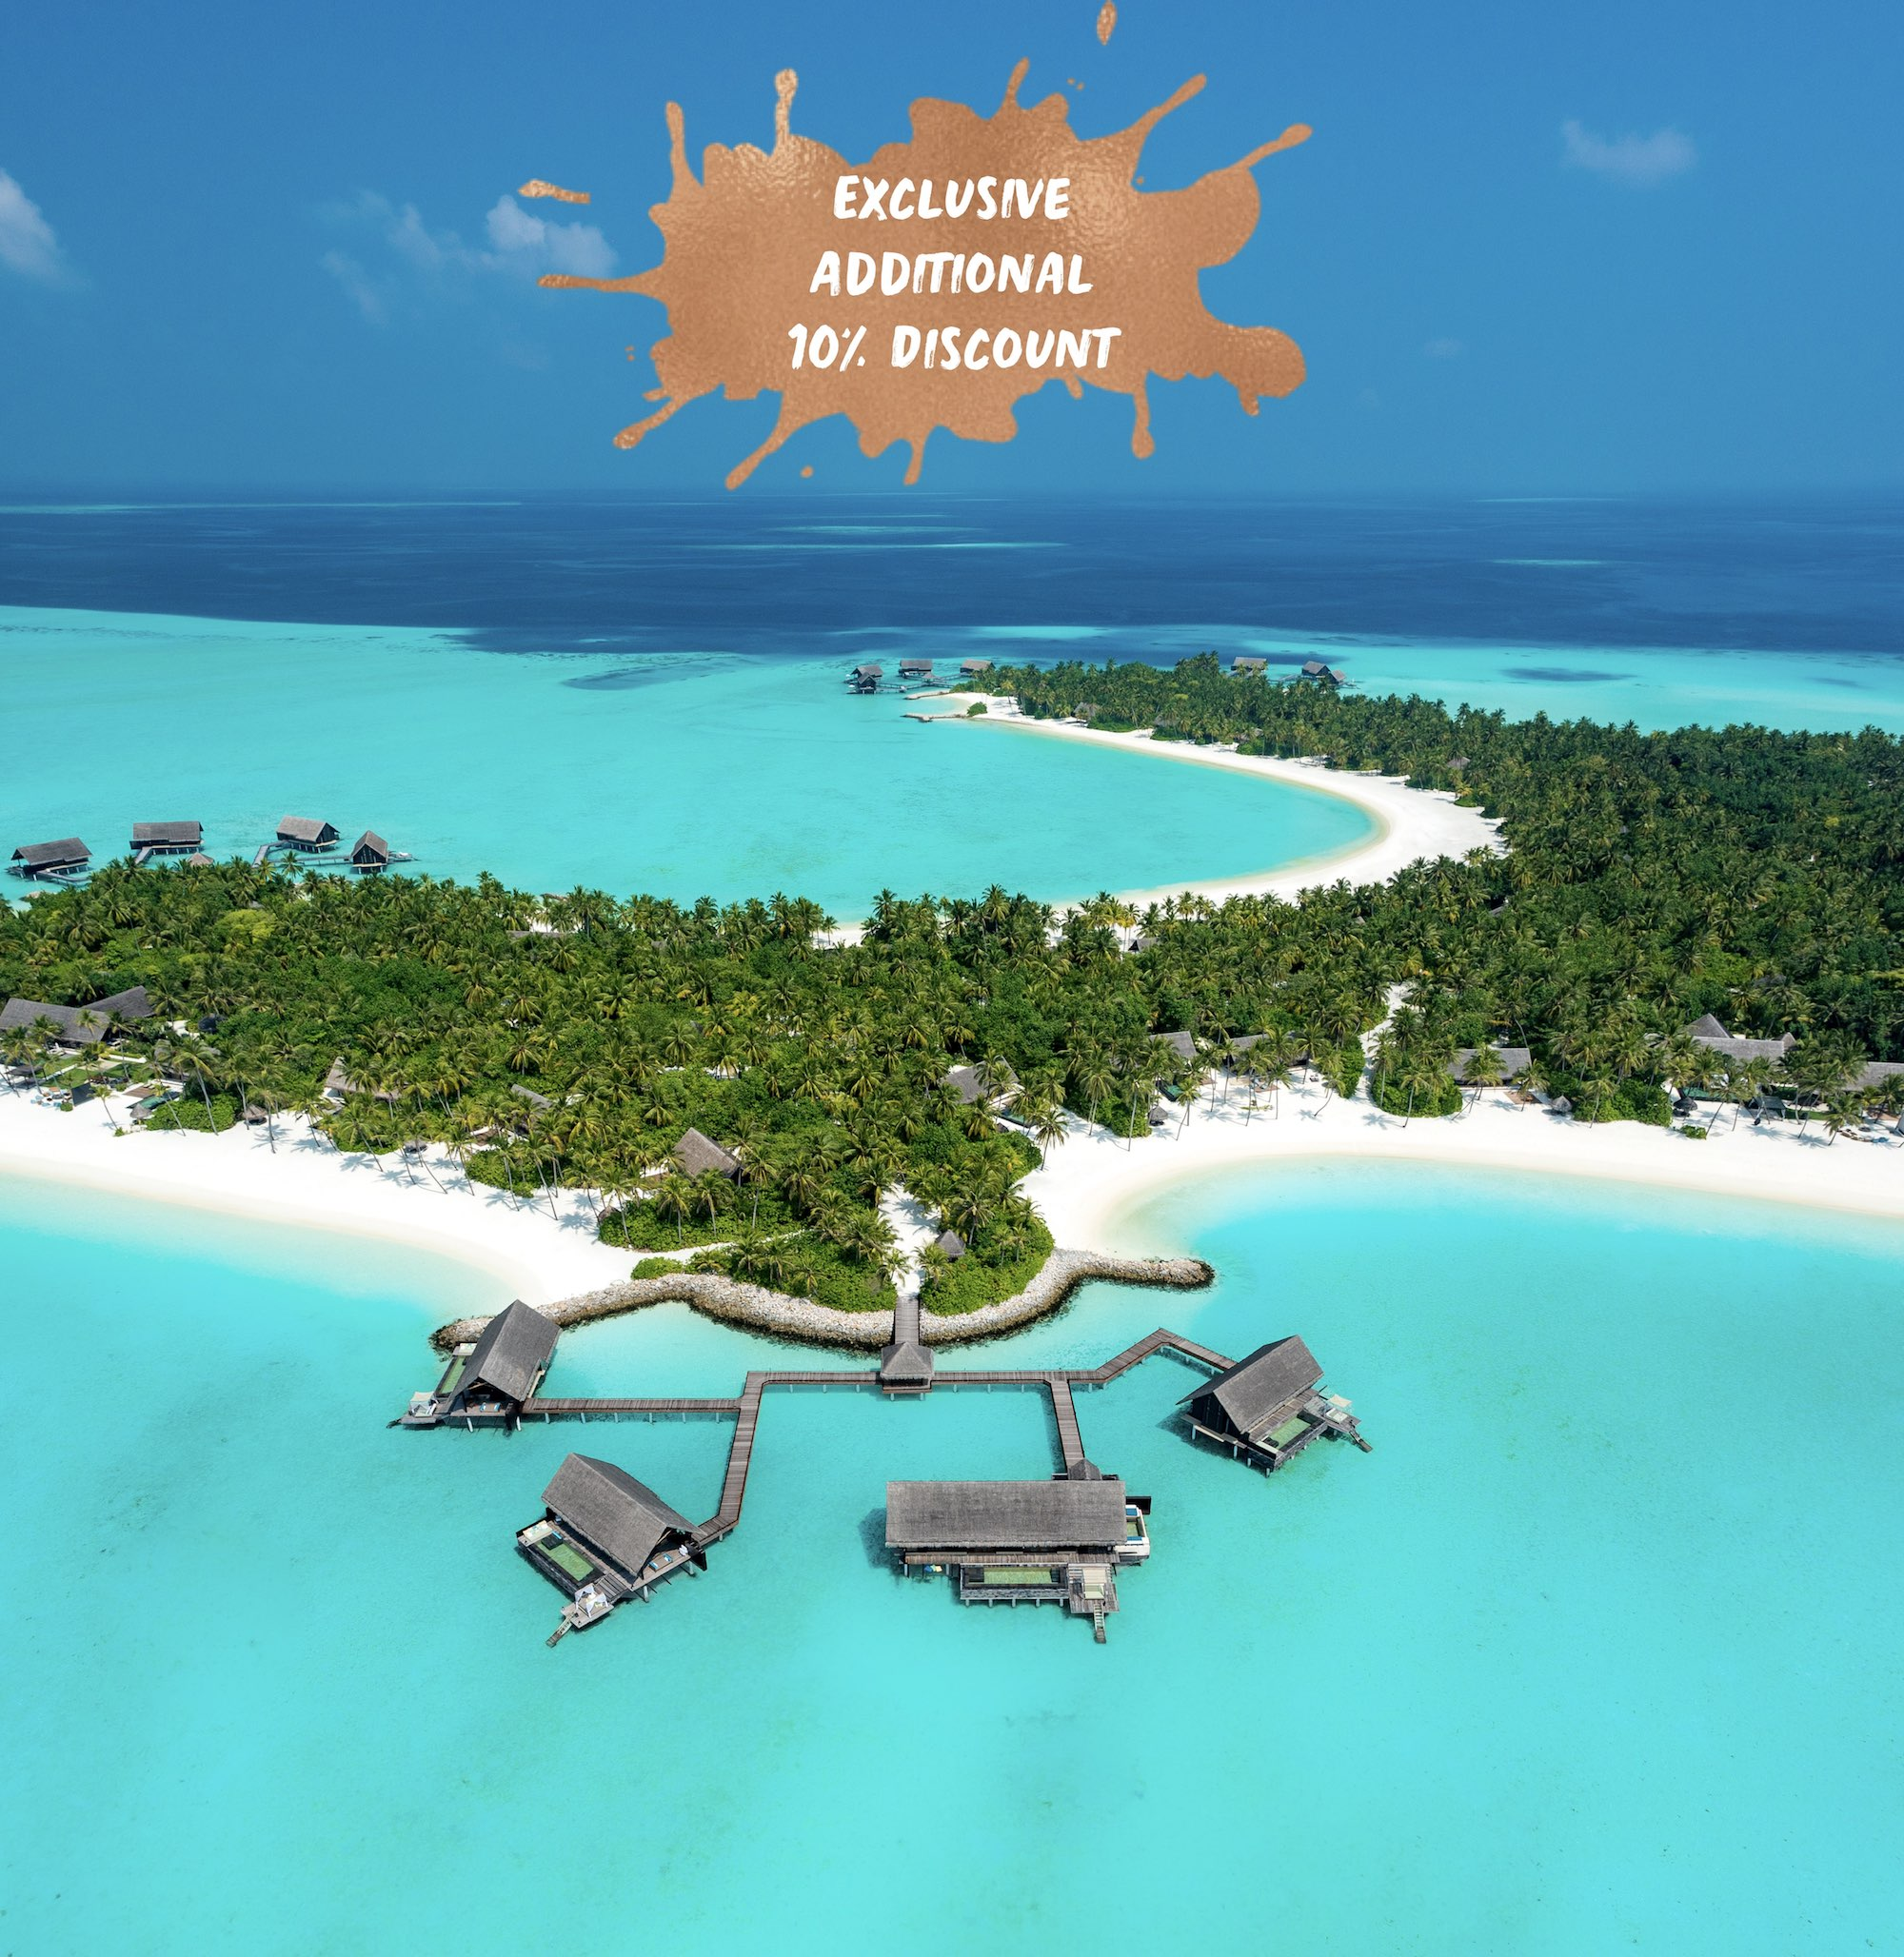 ONE&ONLY REETHI RAH from US$ 8,350.00 - PACKAGE INCLUSIONS:- Stay 7 Nights Pay Only 5 in a BEACH VILLA for 2 guests- Addicted to Maldives Exclusive 10%Additional Discount- Complimentary return shared boat transfers for 2 guests- Complimentary Half Board in Reethi restaurant *(cond's apply)- All Taxes and services charges